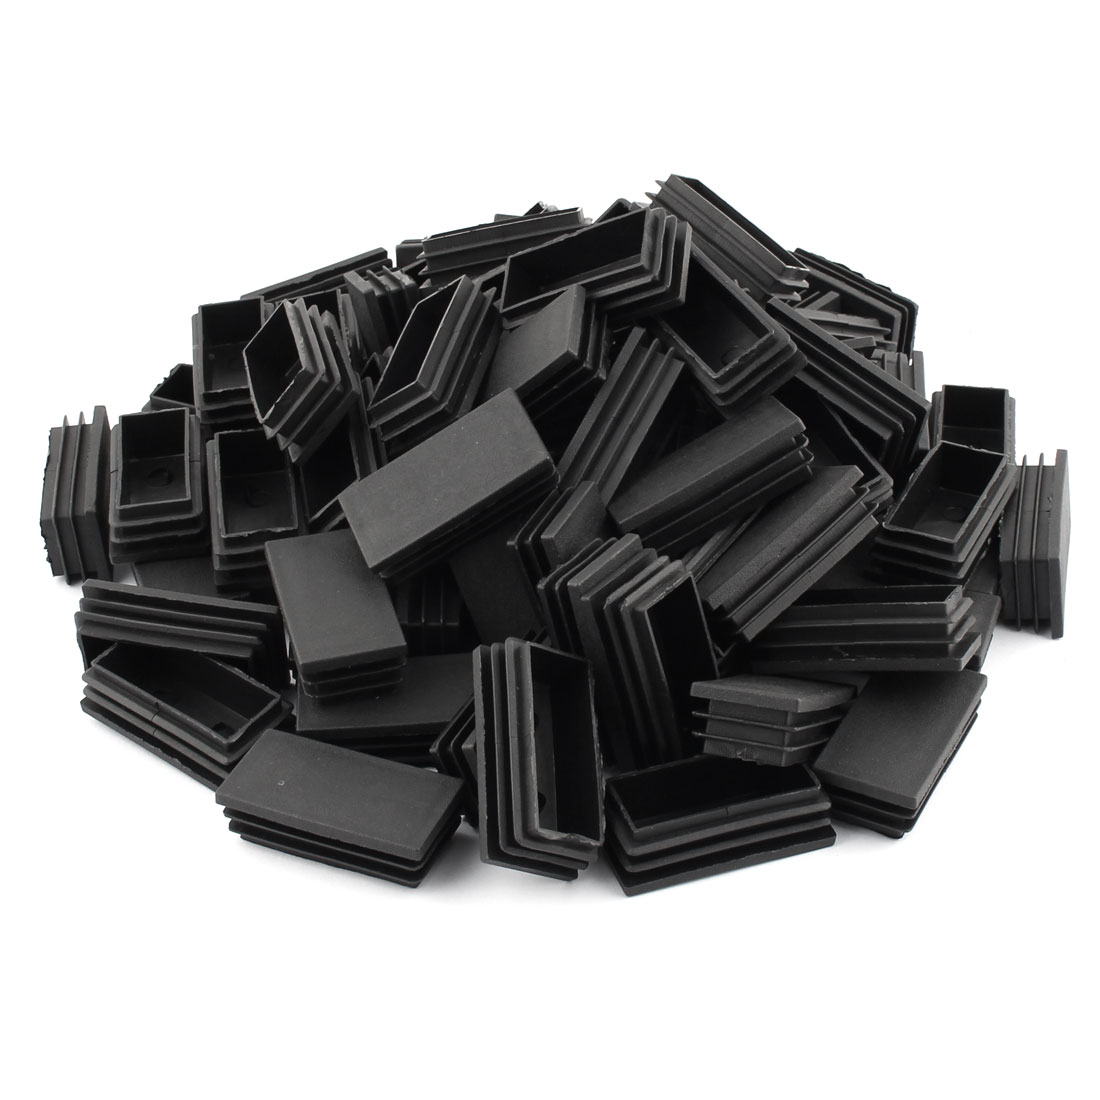 Home Plastic Rectangle Shaped Furniture Legs Tube Insert Black 59 x 30mm 80 Pcs